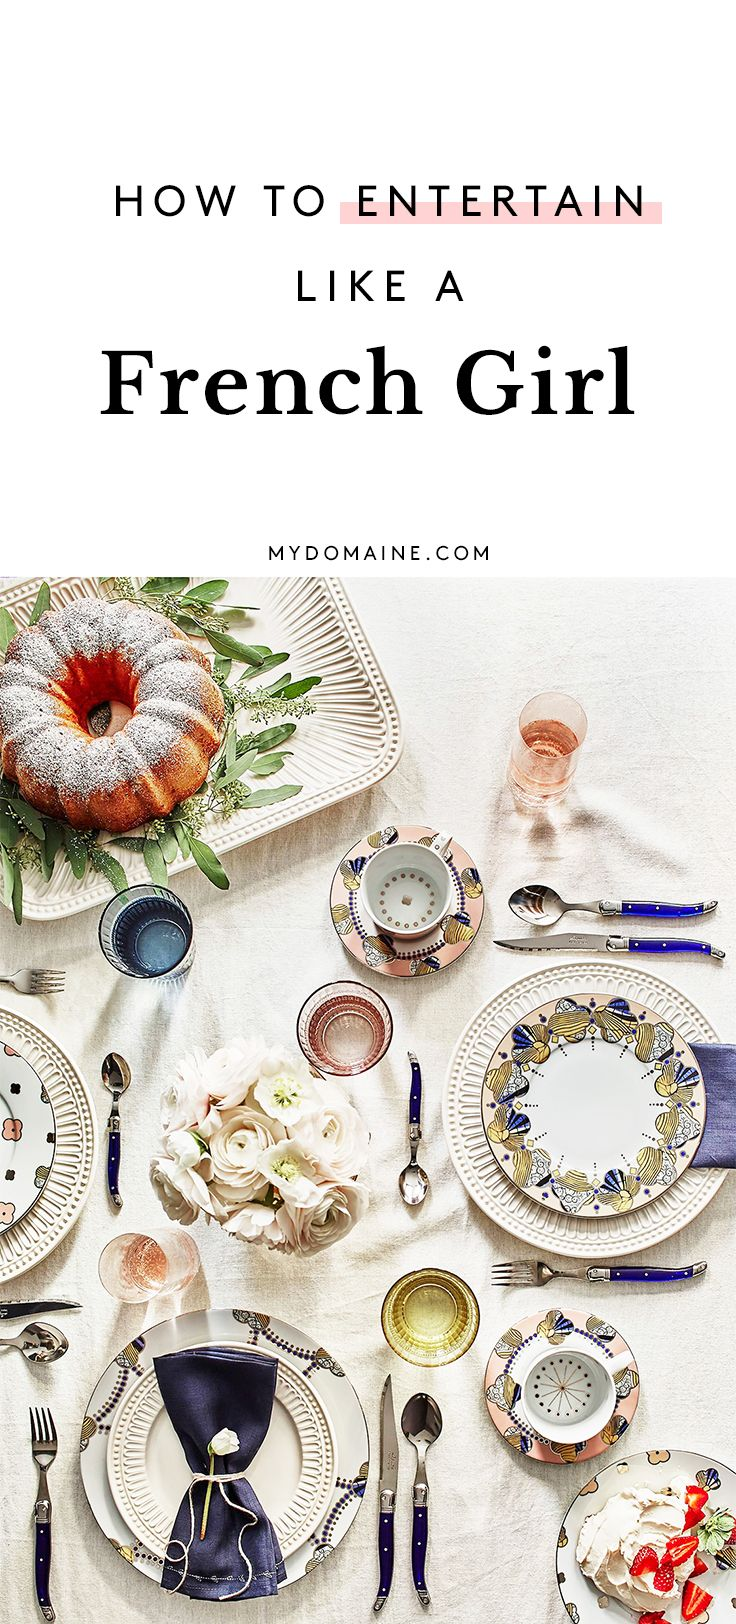 best culinary creations images on pinterest creative ideas